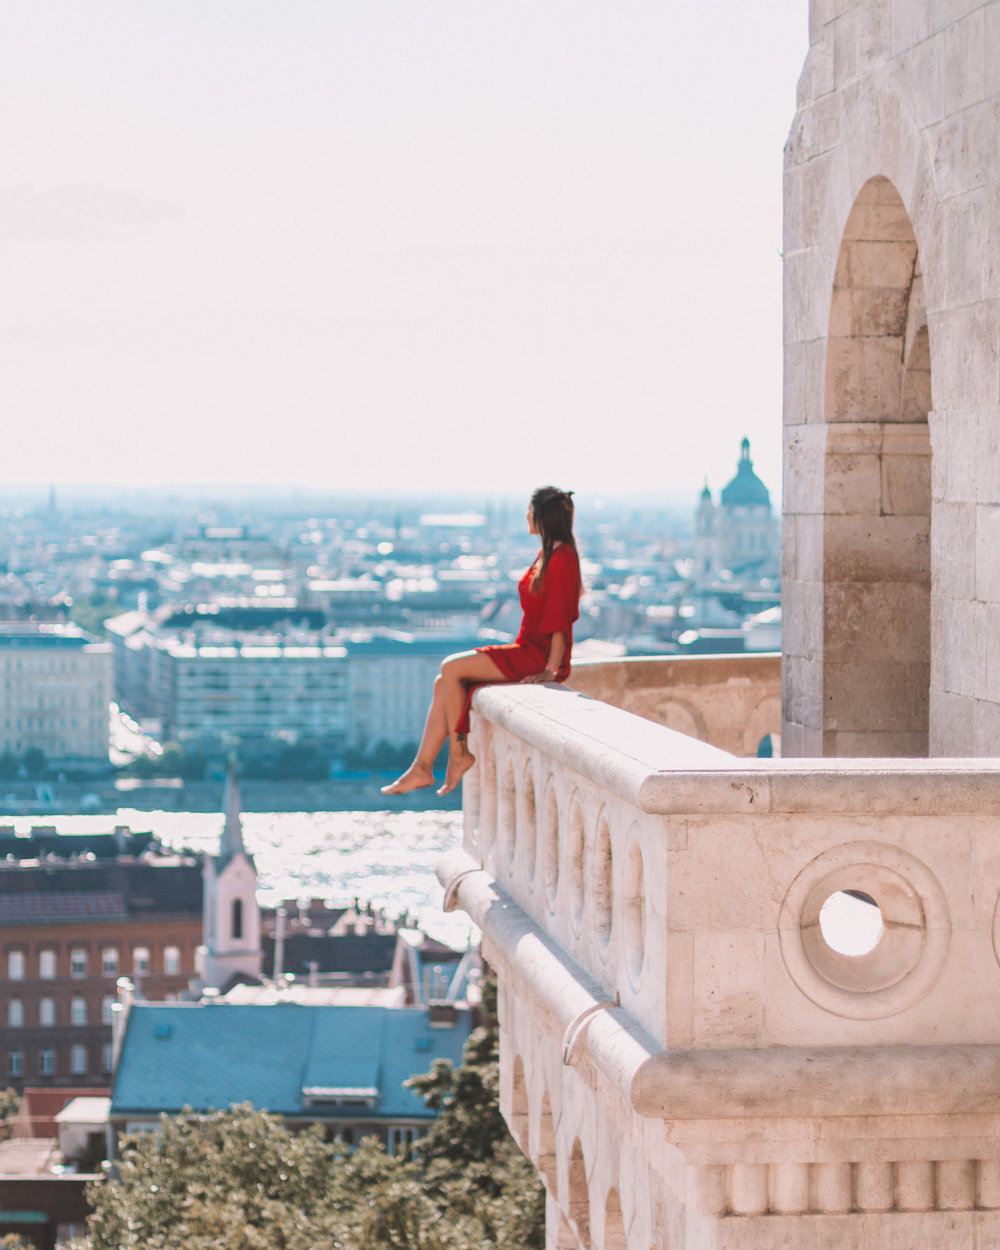 freeoversea budapest hungary travel the world together couple interrail beautiful photos instagrammable places europe